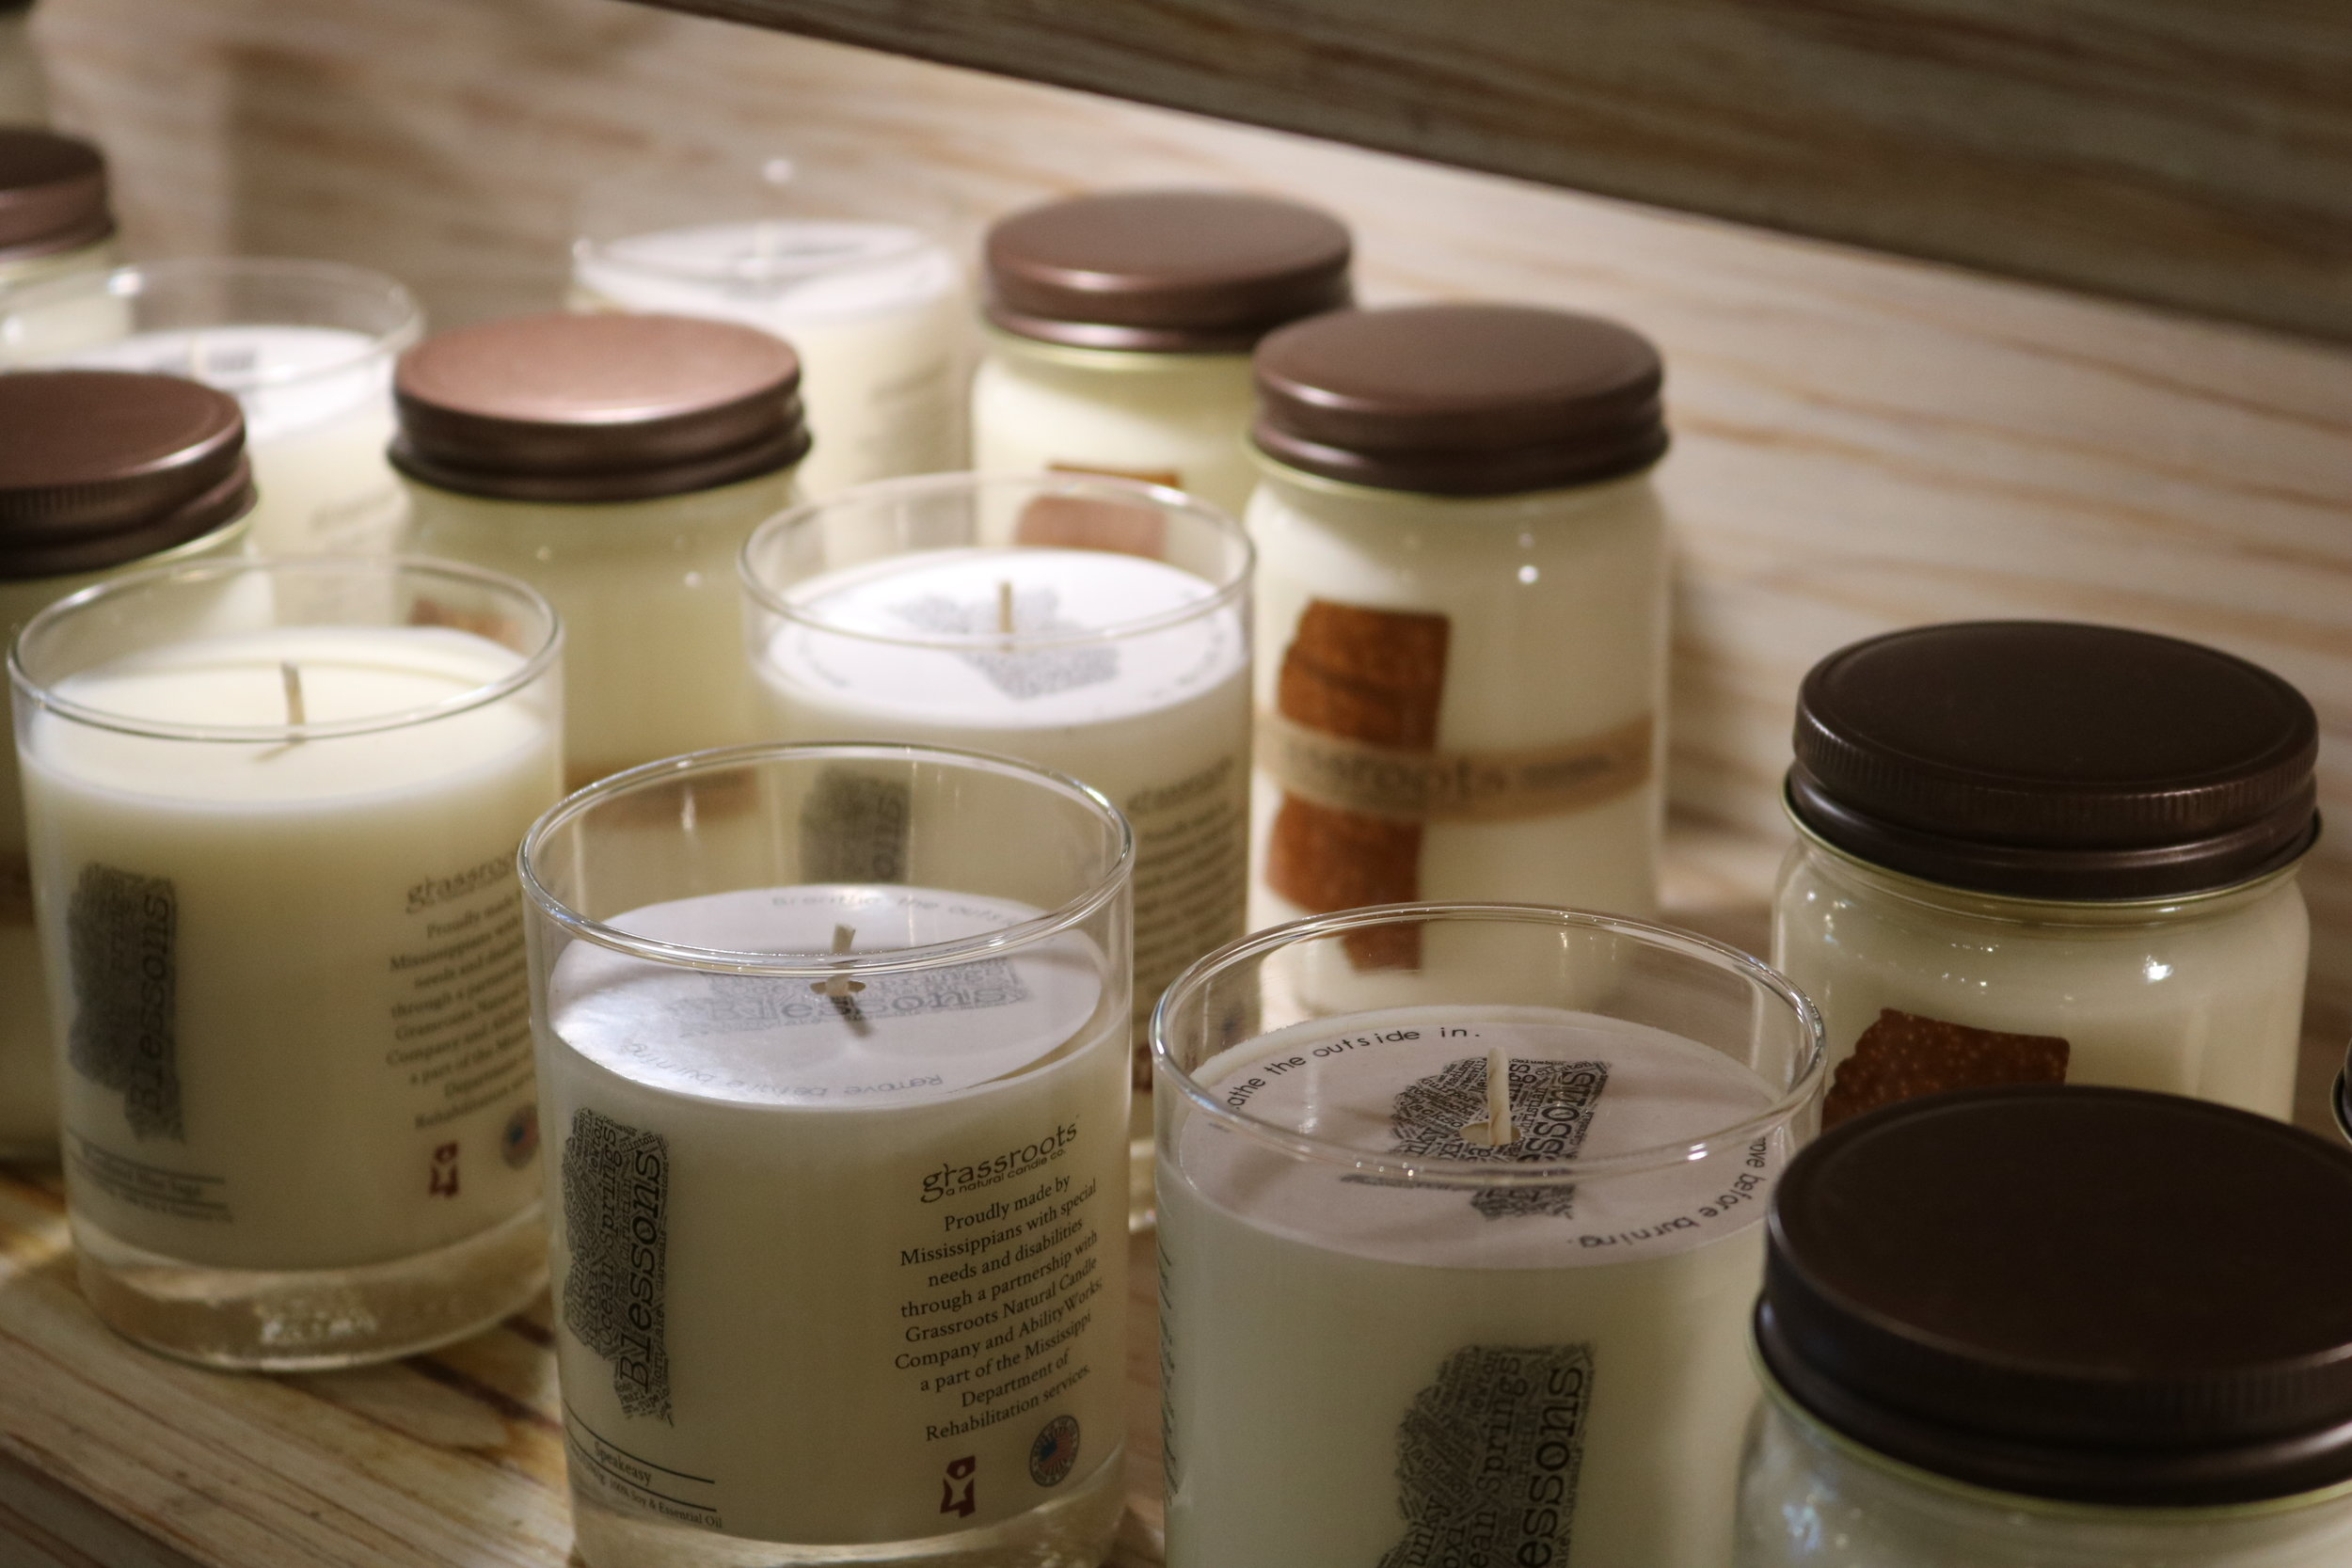 Grassroots Natural Candle Co.